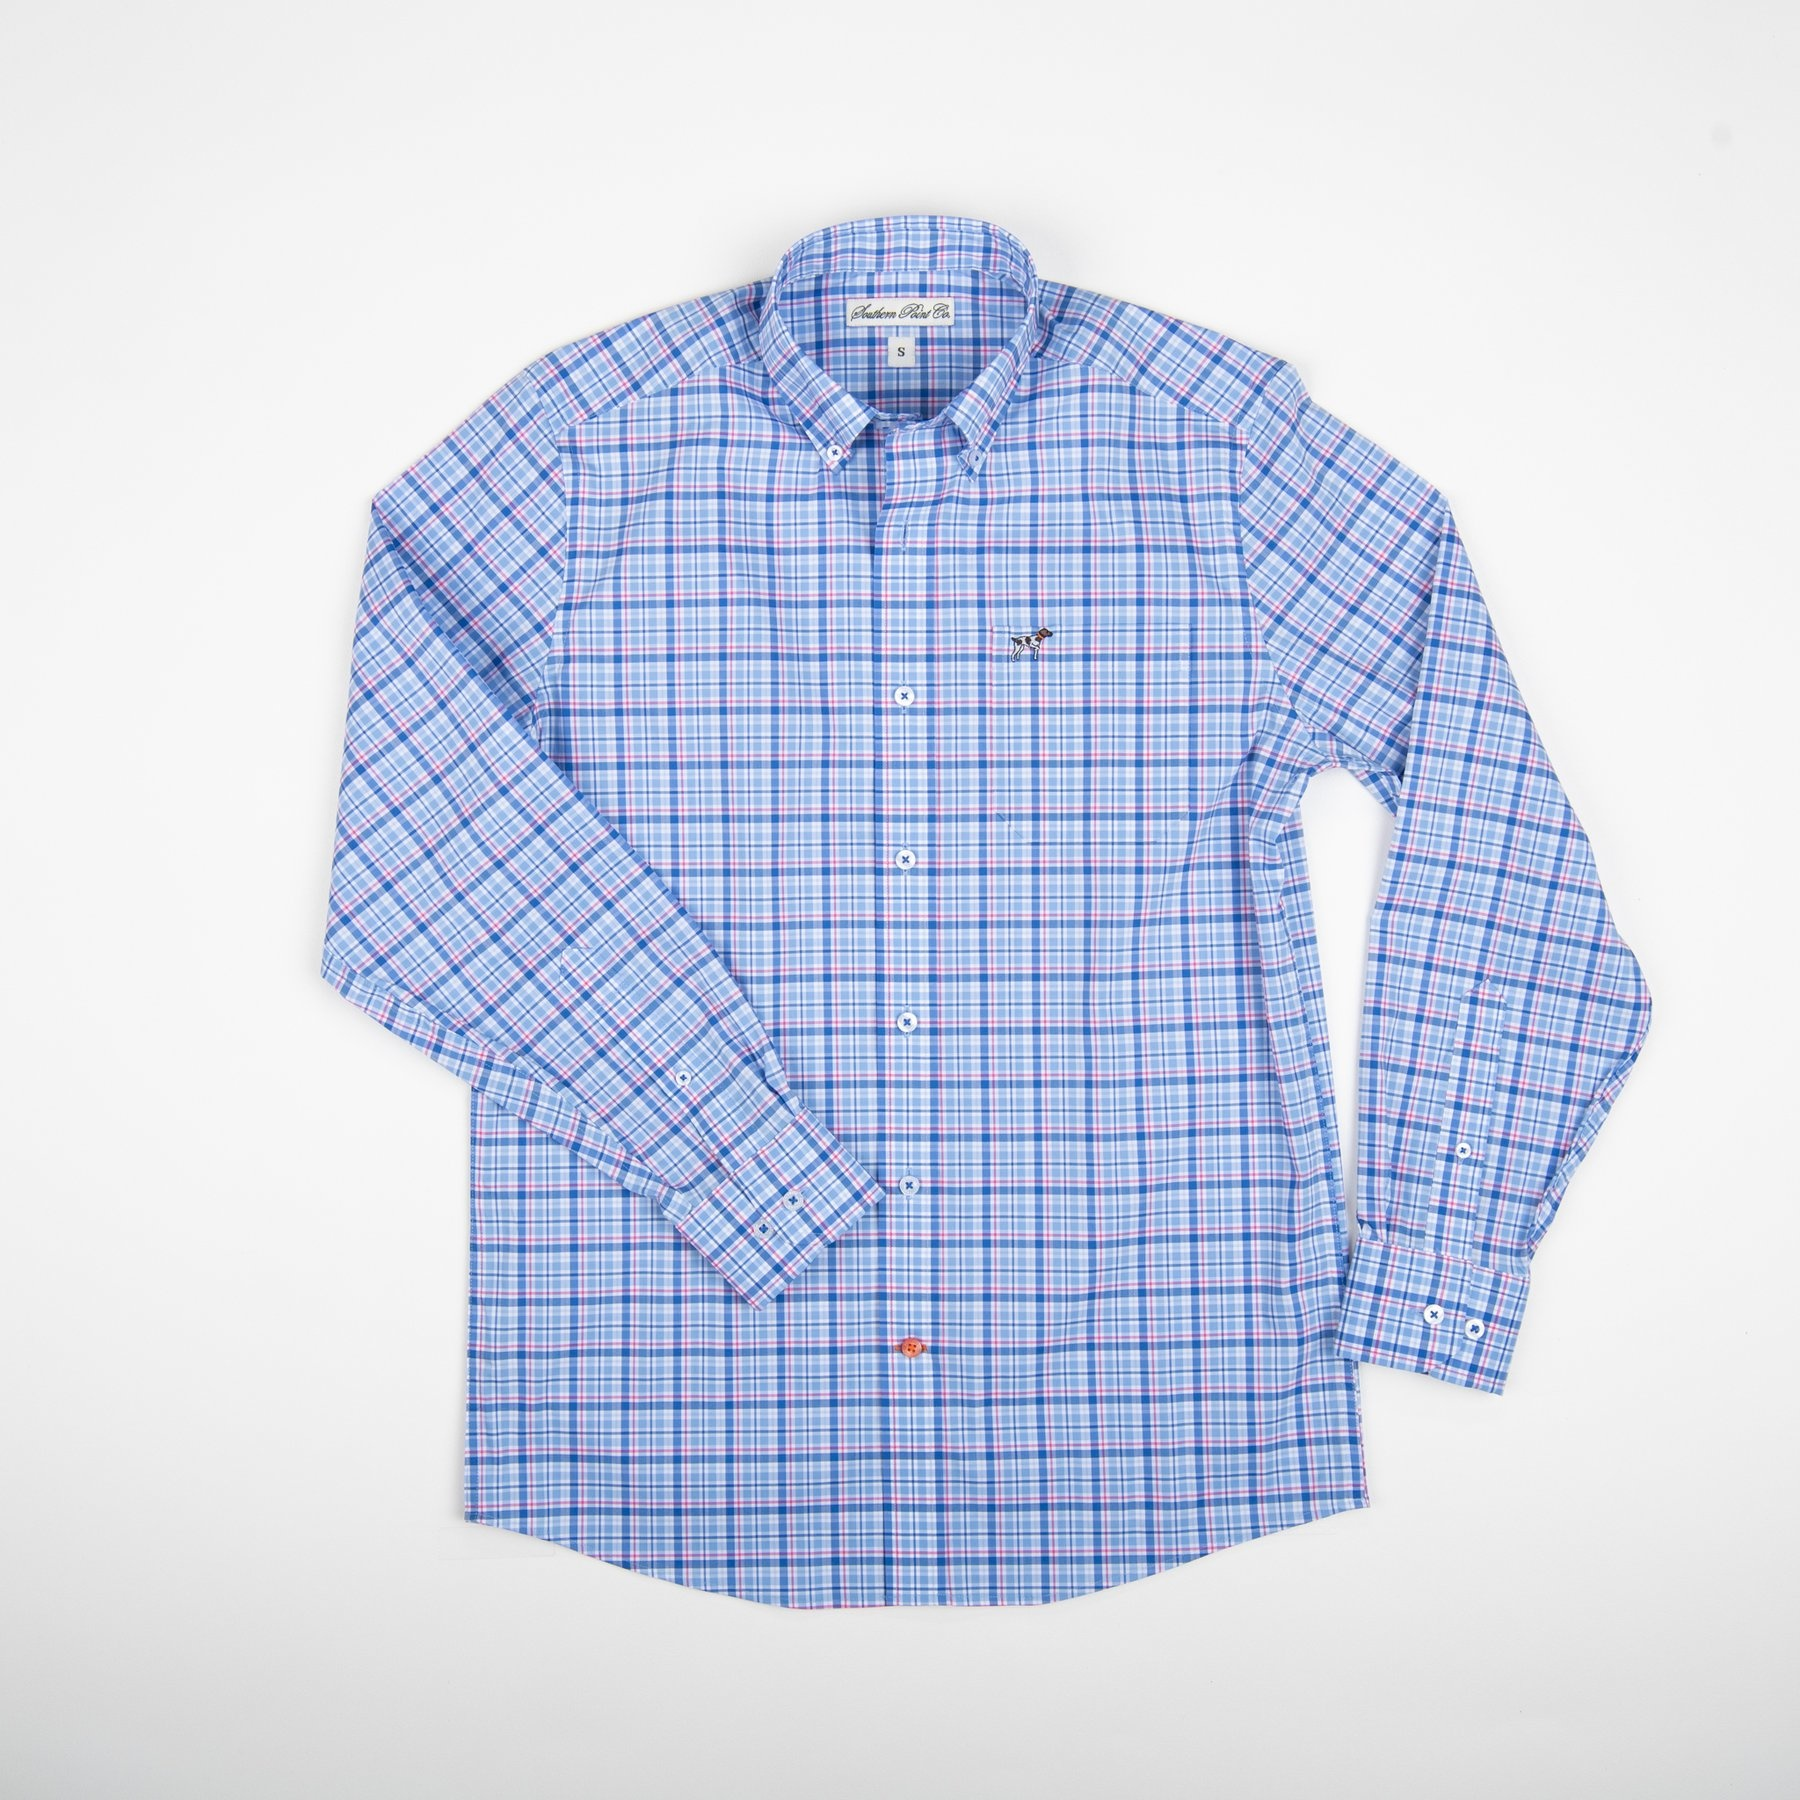 Southern Point Co. The Hadley Shirt